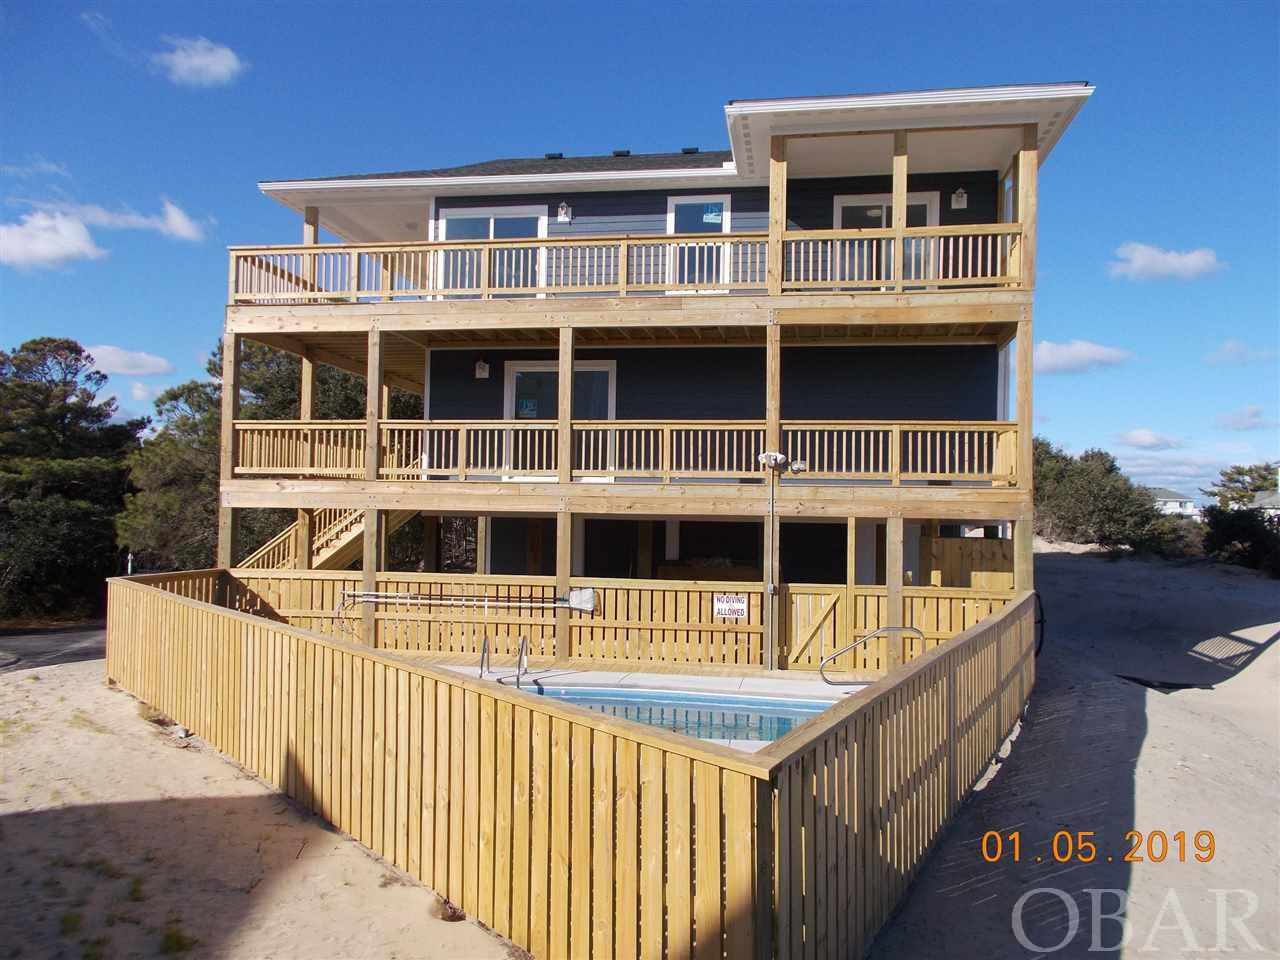 933 Soundside Court, Corolla, NC 27927, 4 Bedrooms Bedrooms, ,4 BathroomsBathrooms,Residential,For sale,Soundside Court,102878